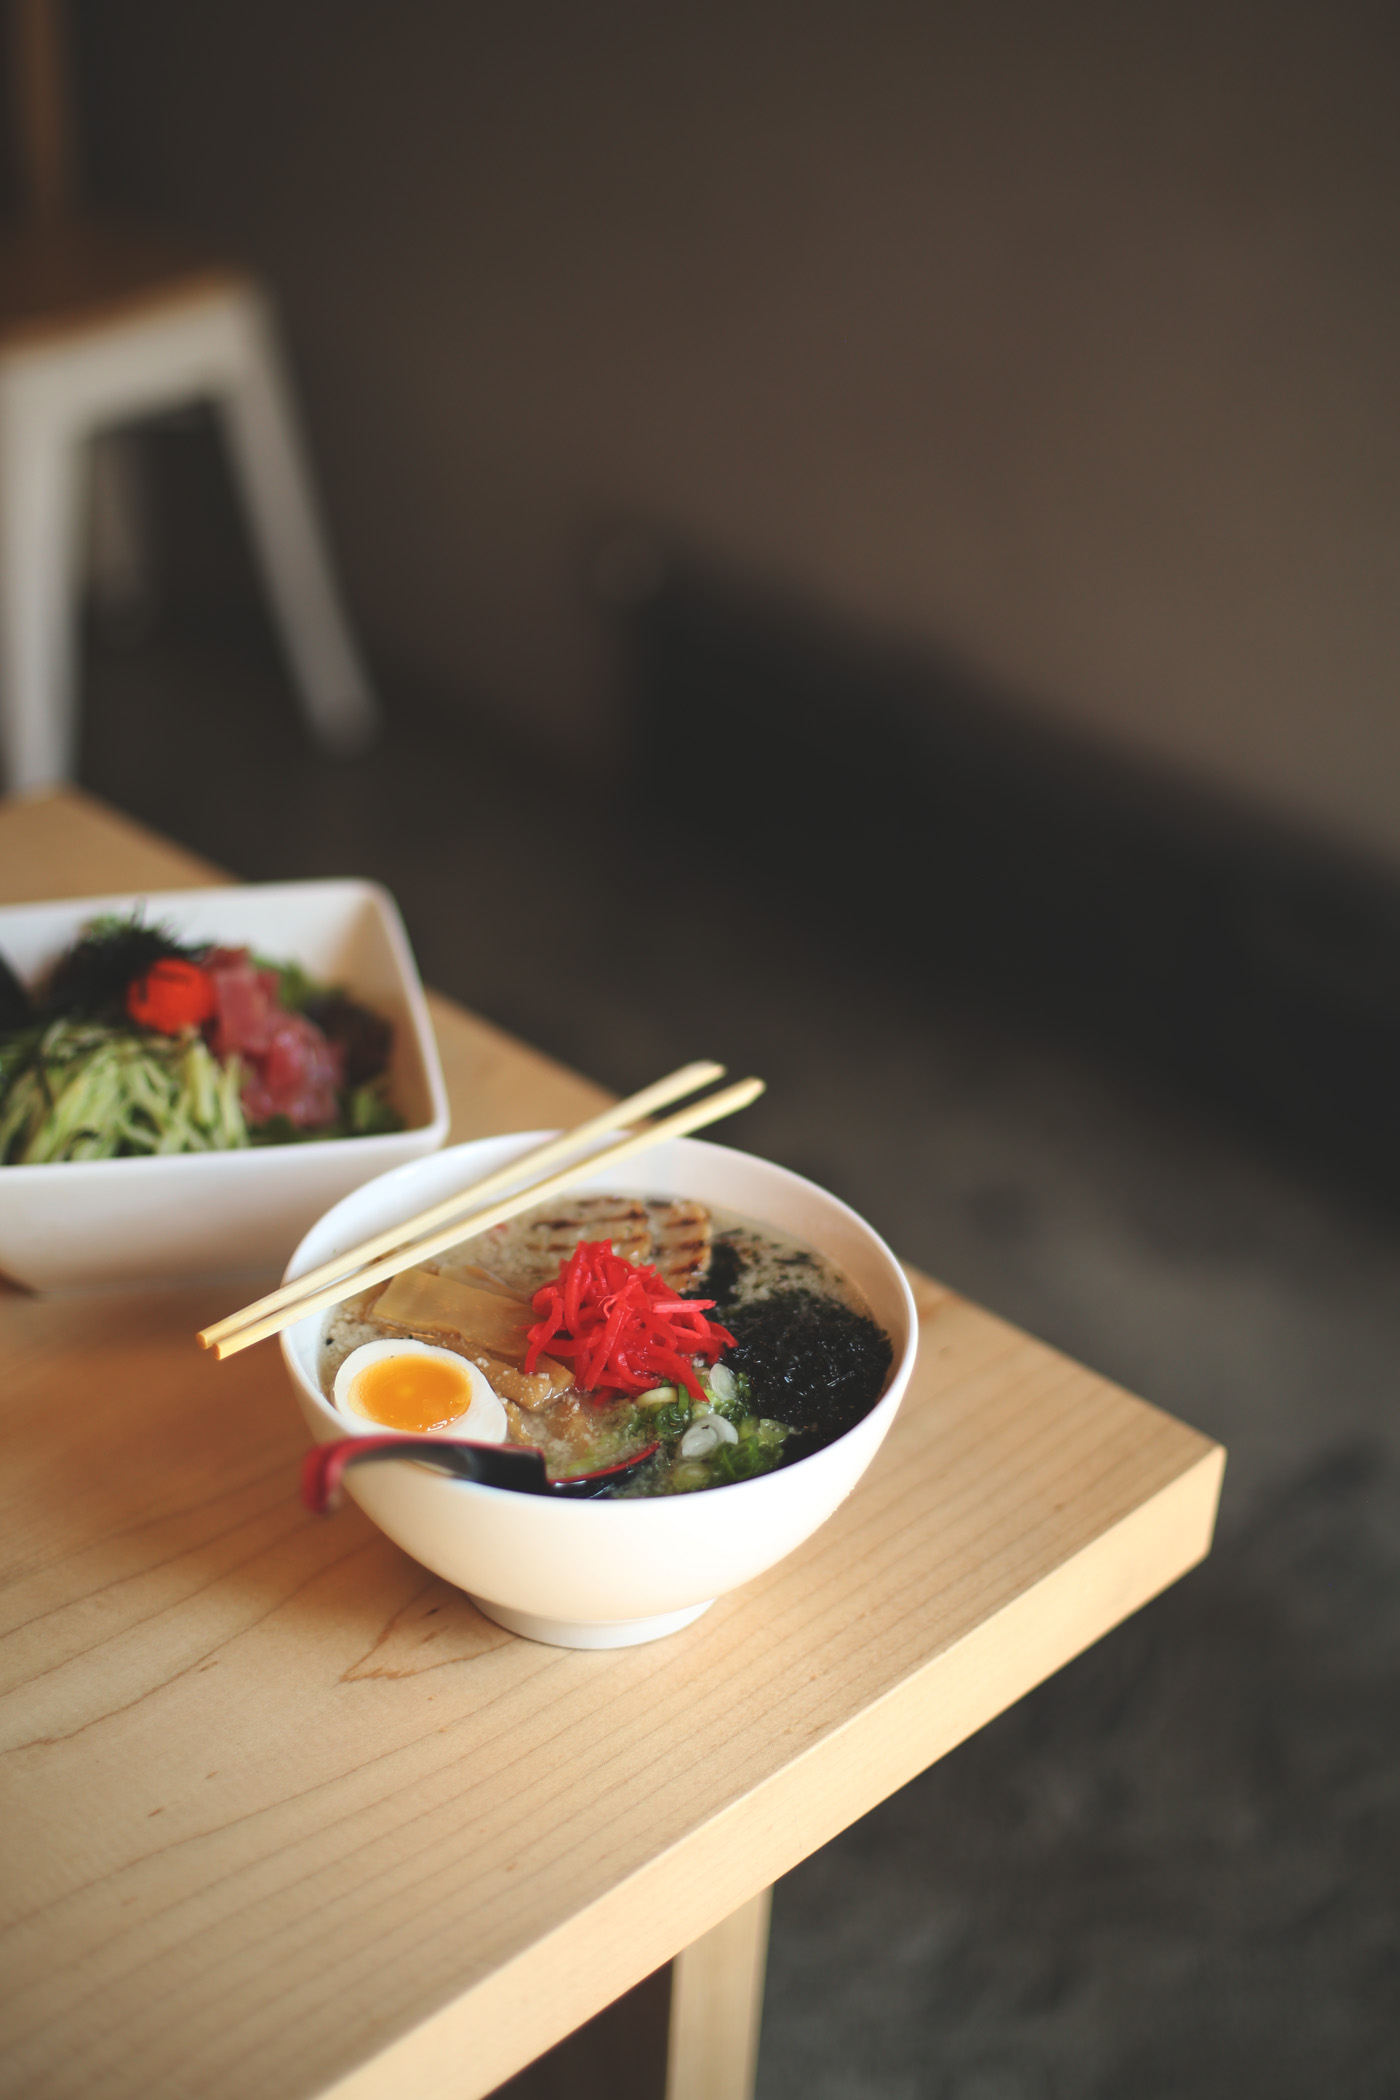 Their special ramen of the day was the Astorian BBQ and we were drowning in flavor.